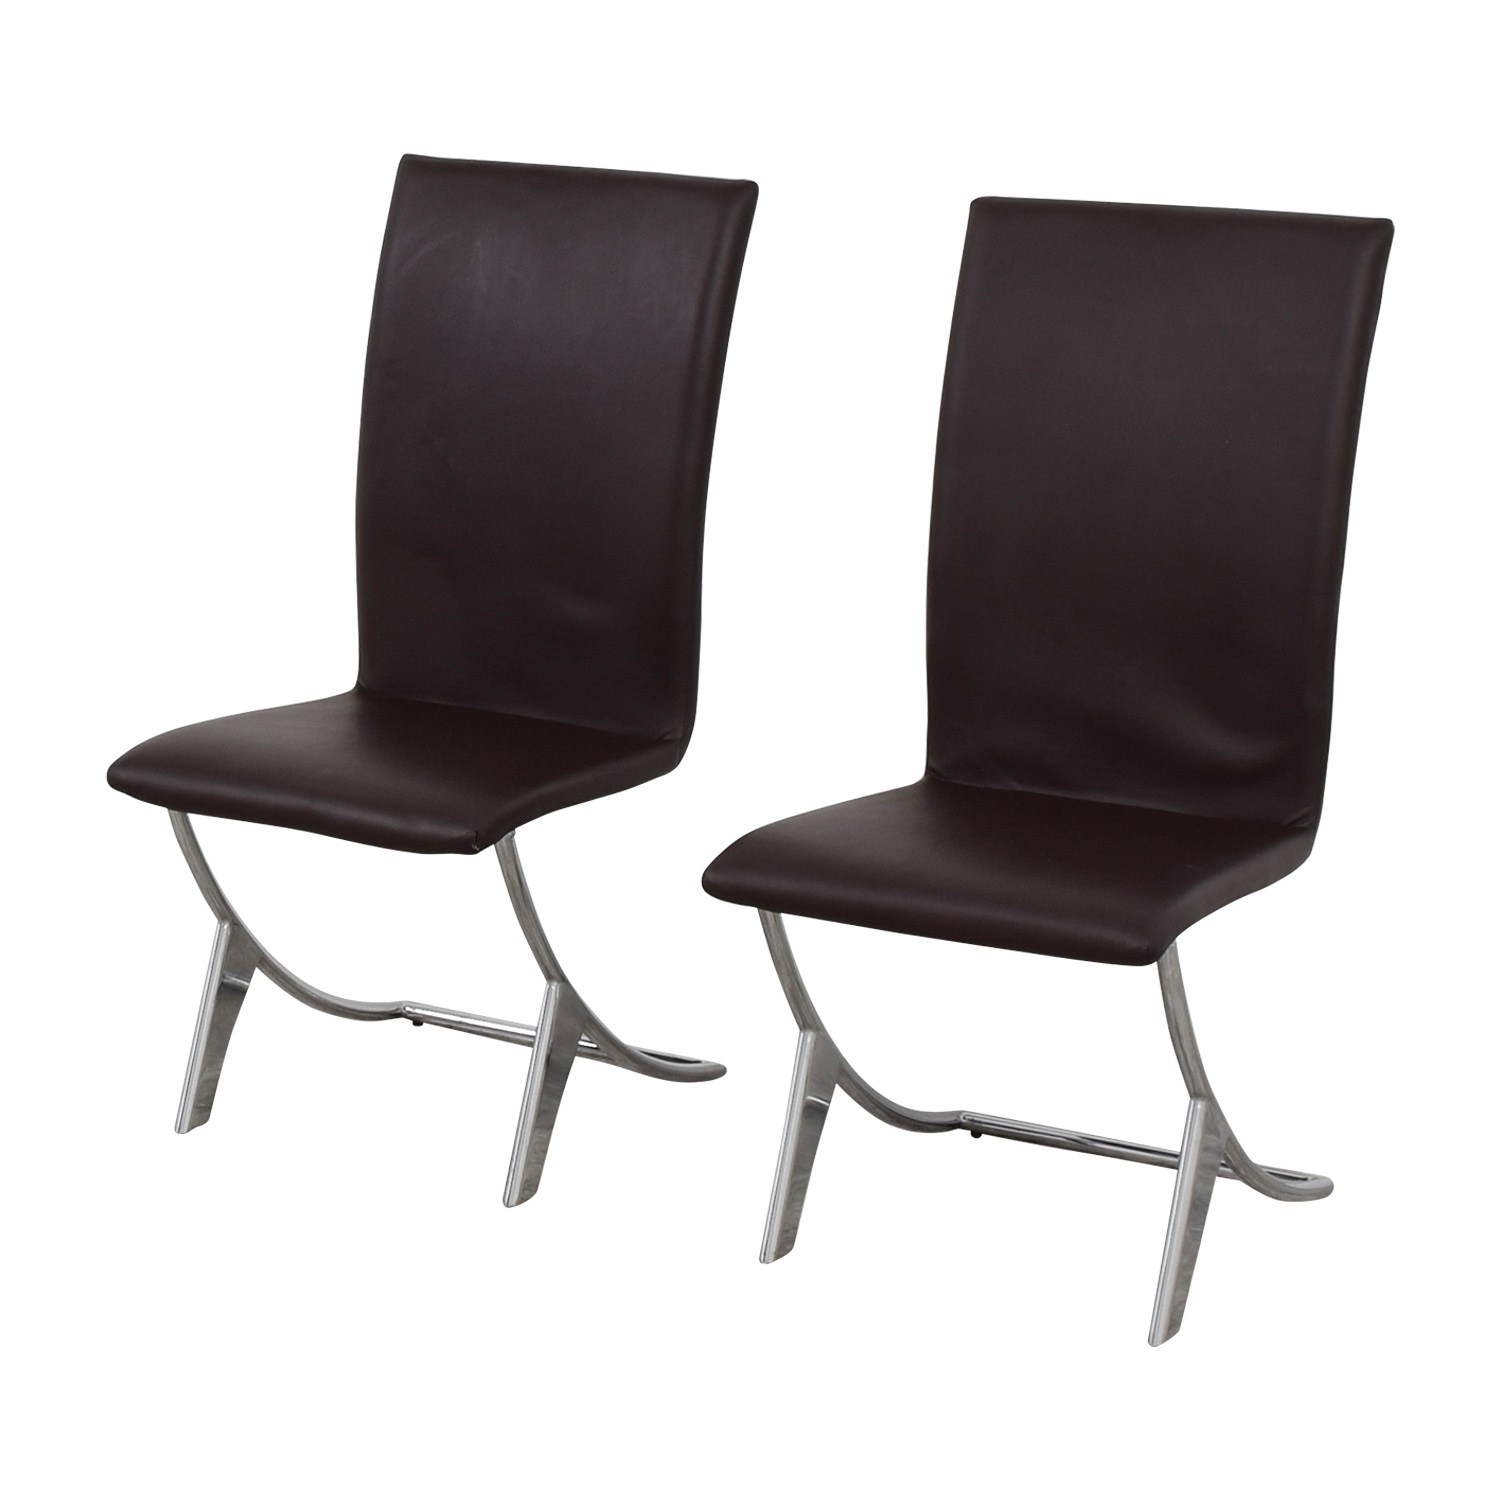 chocolate leather dining chairs outdoor chair covers for sale 80 off brown